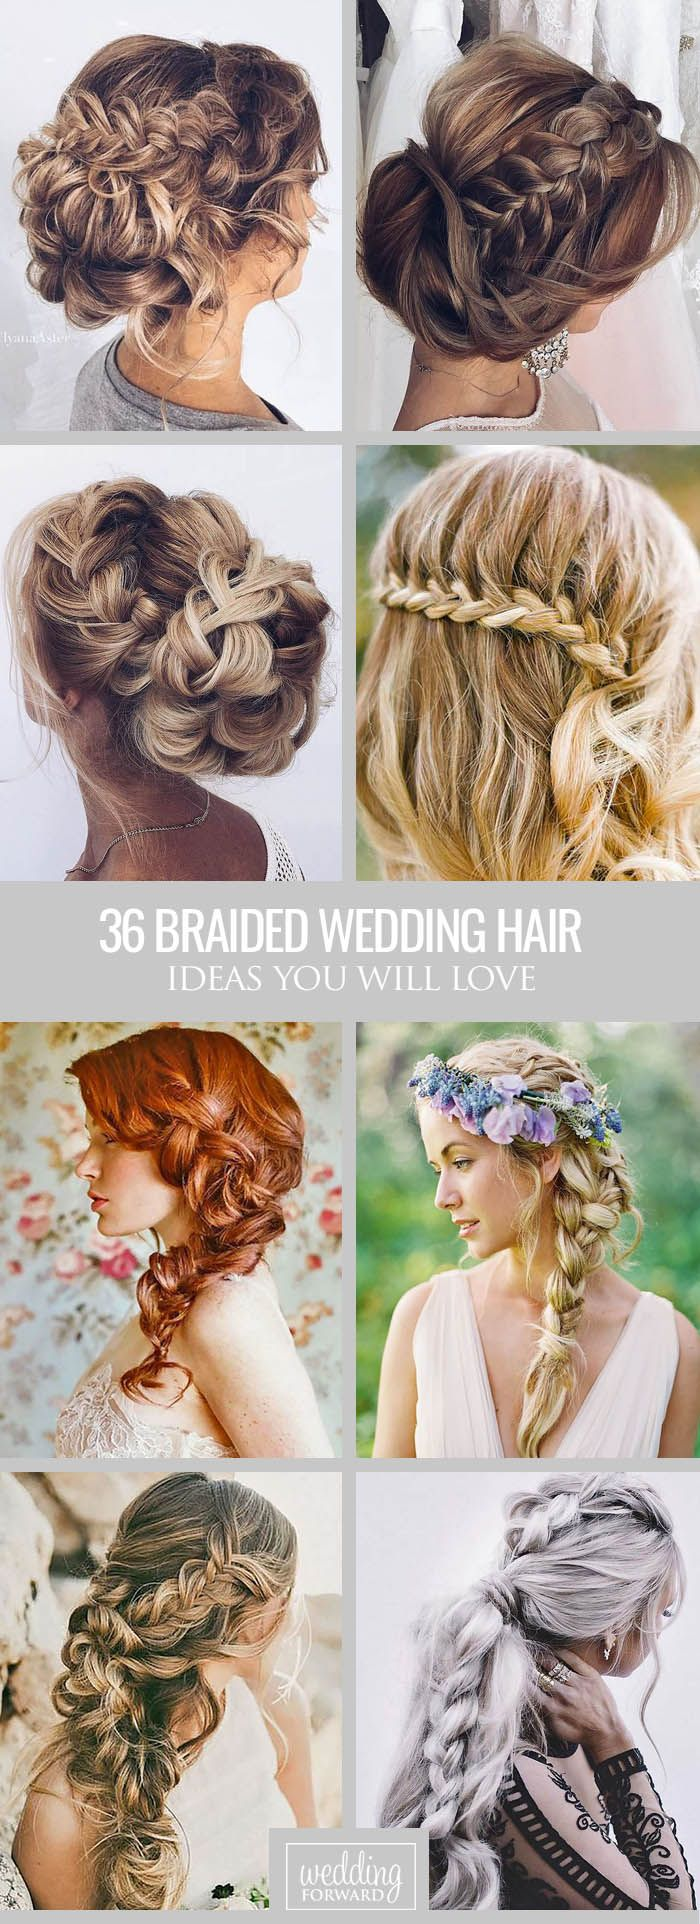 36 Braided Wedding Hair Ideas You Will Love ❤ From soft waves to gorgeous updos…